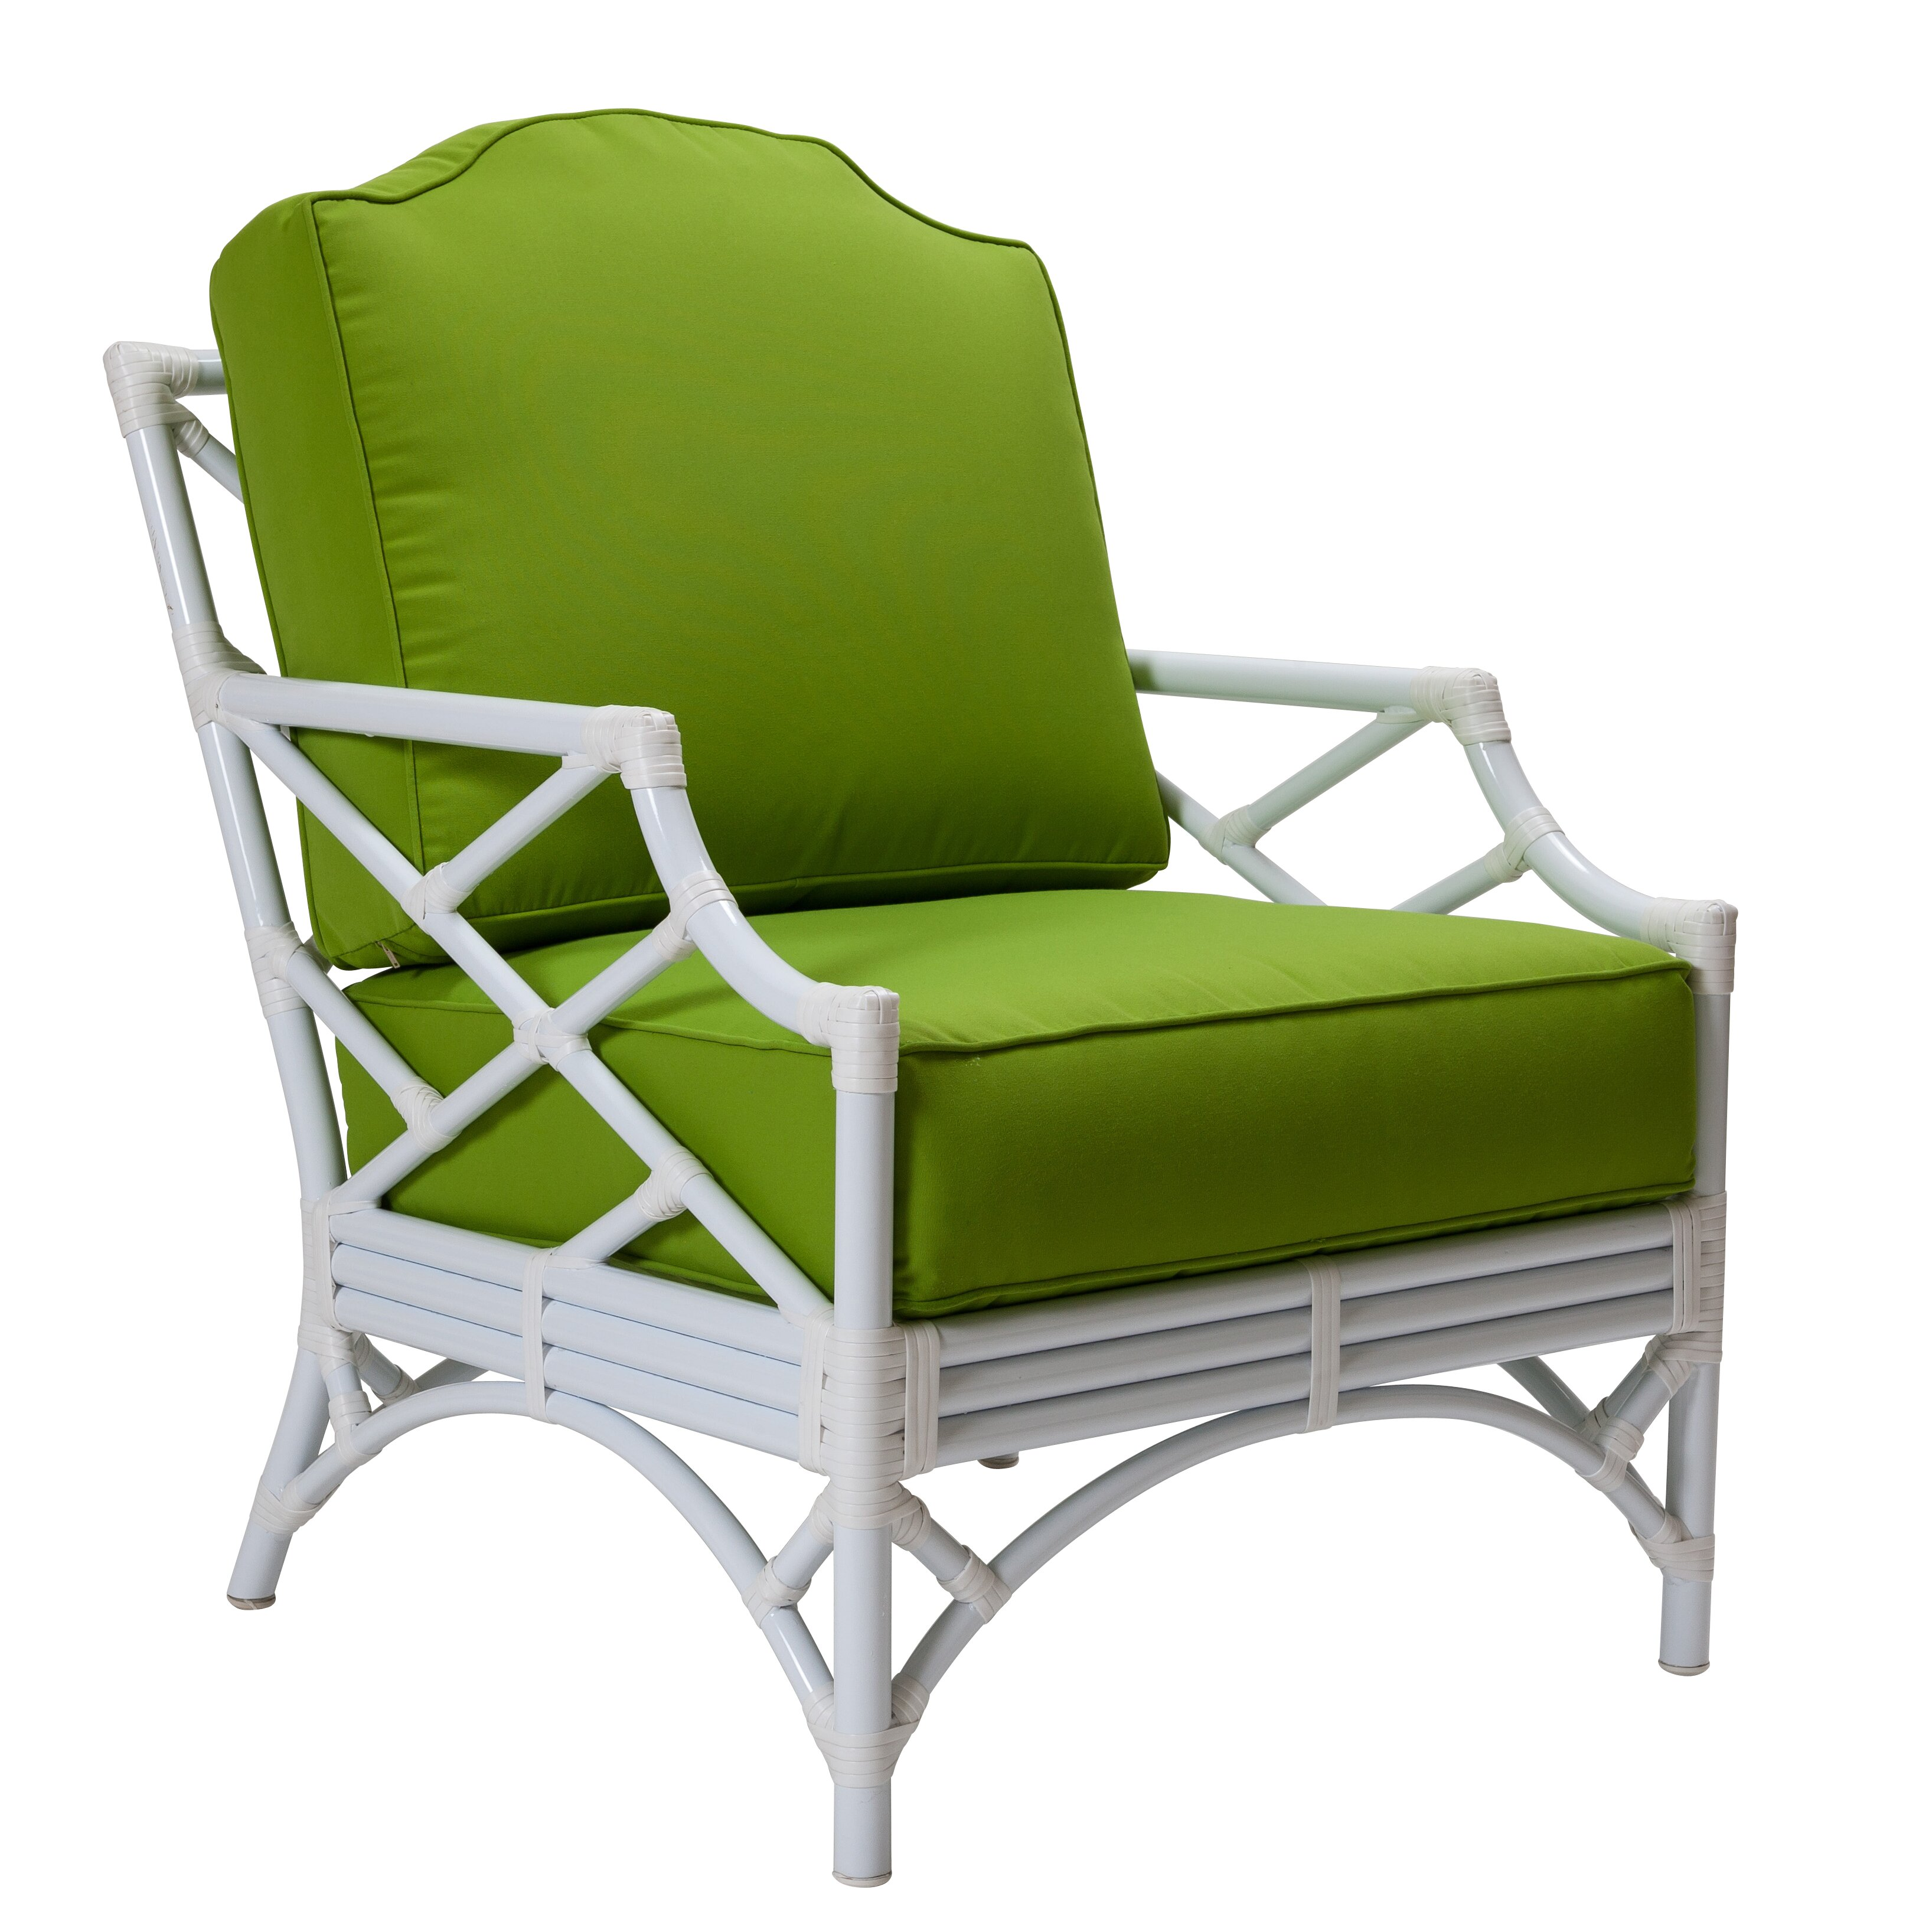 David Francis Furniture Chippendale Lounge Chair with